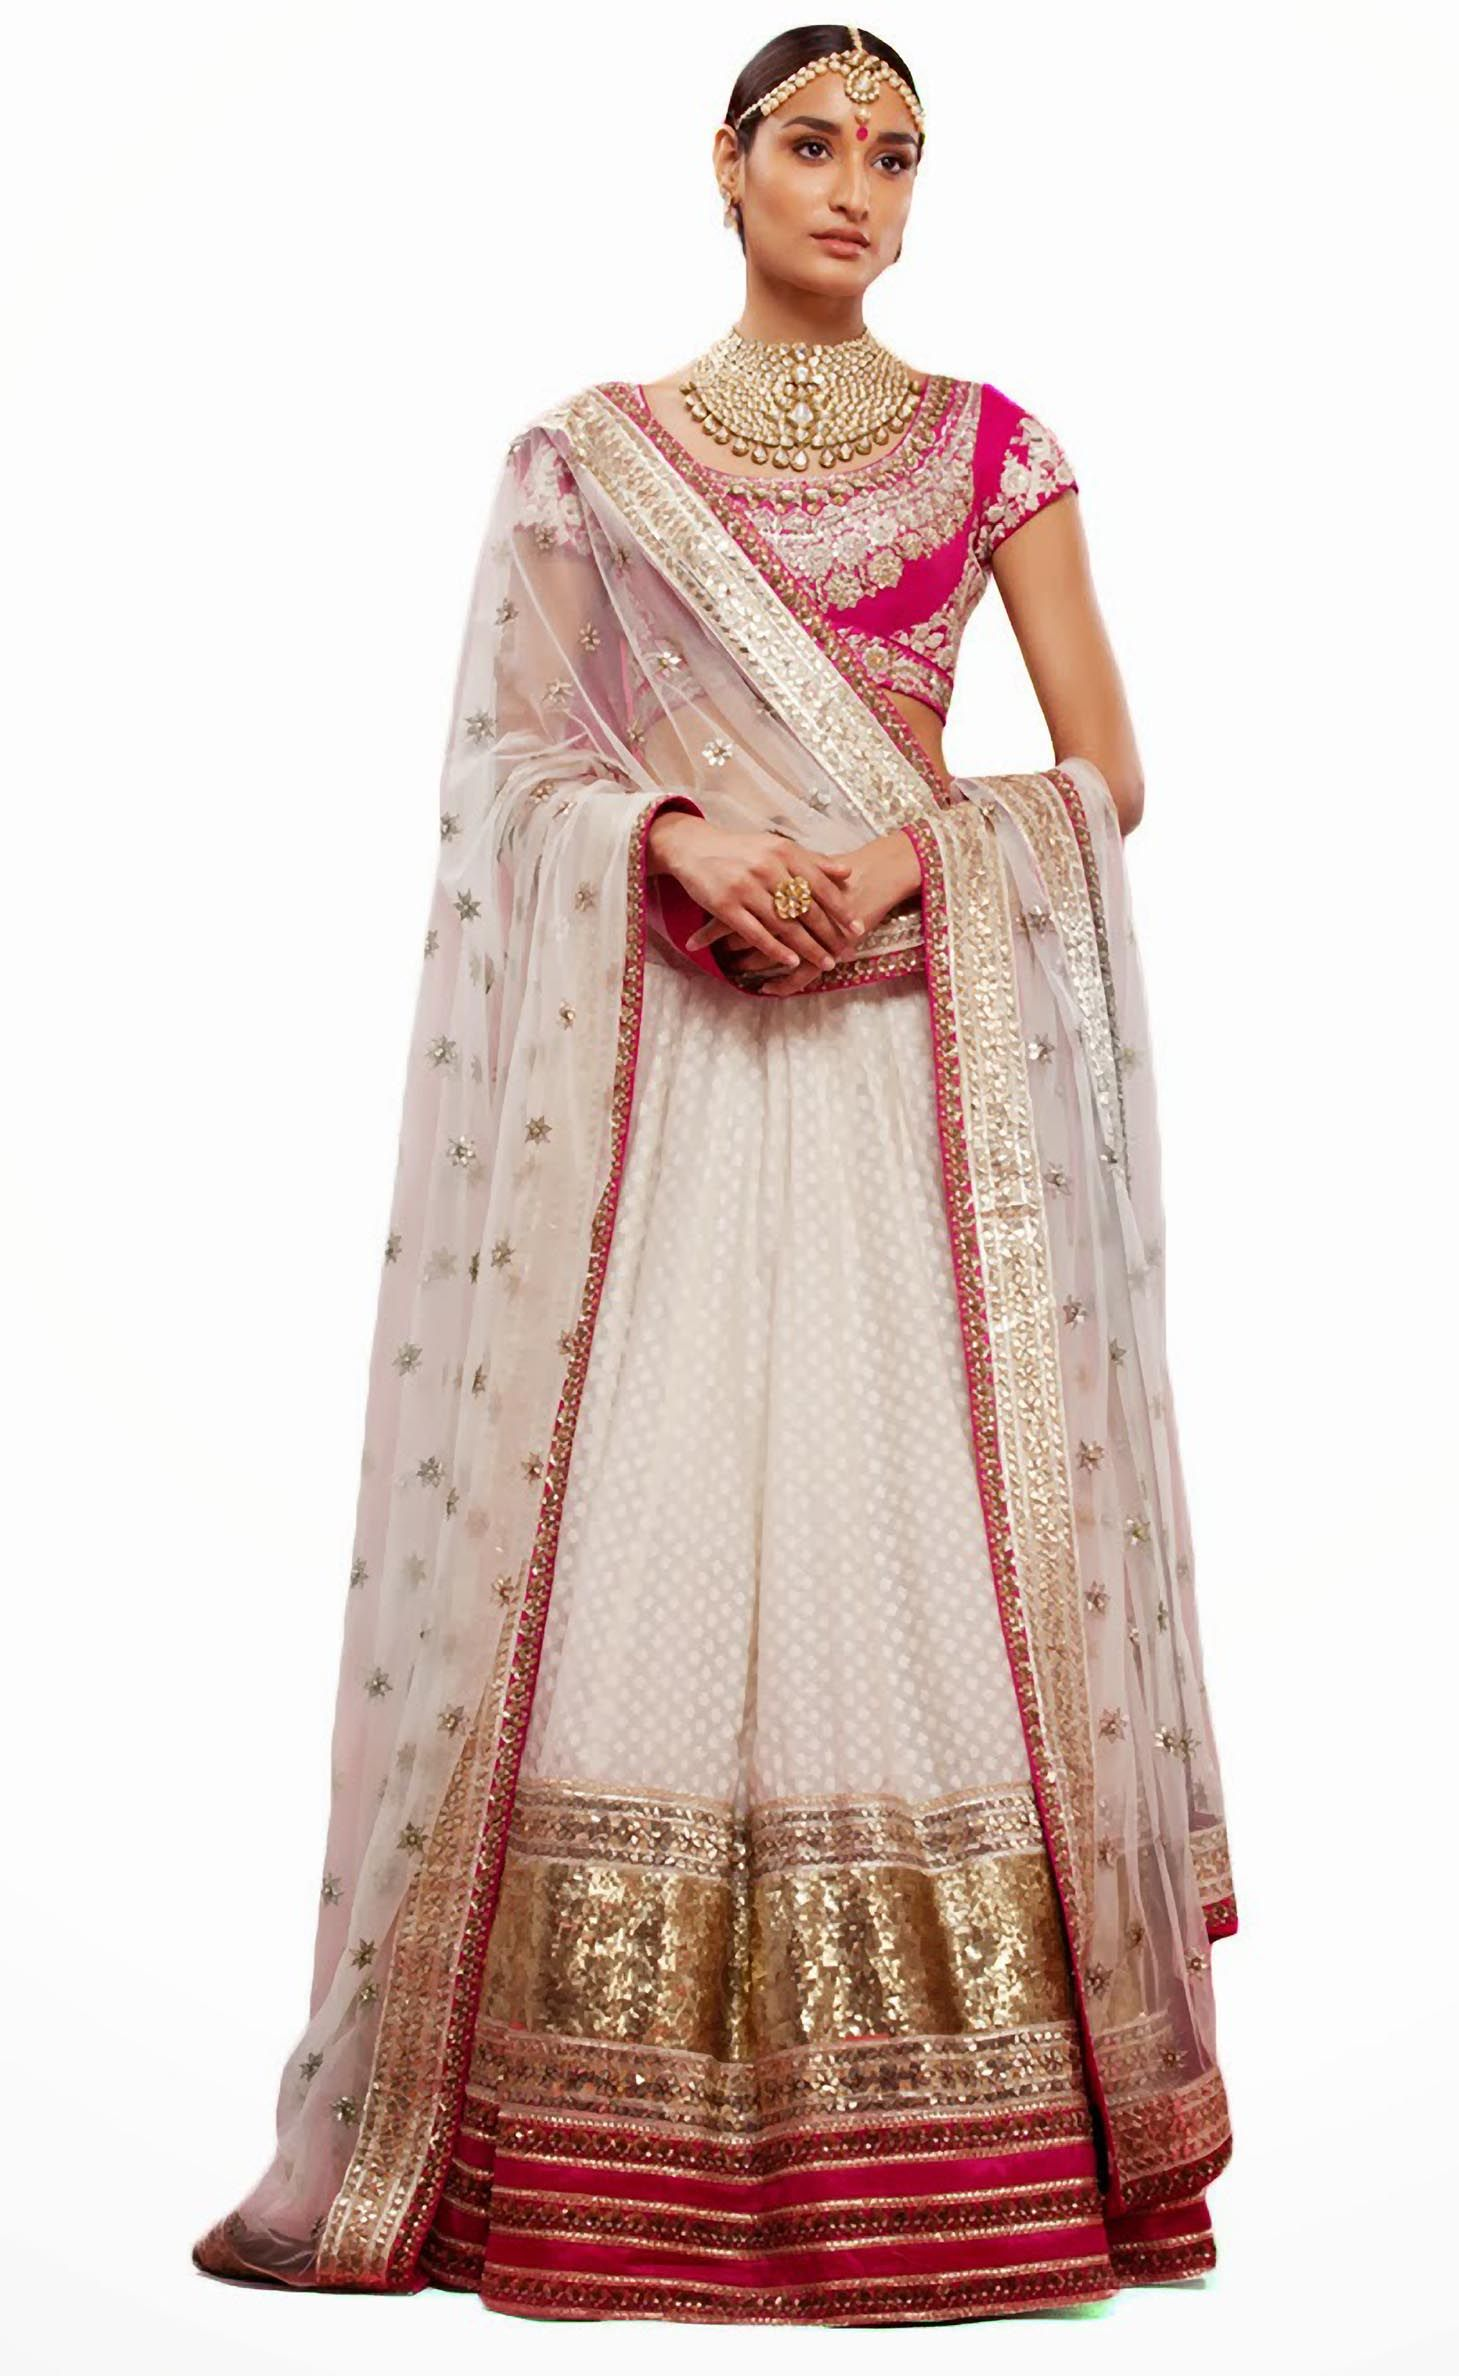 By Sabyasachi romancing with old world charm, to create timeless Bridal wear. -Myfashioncart